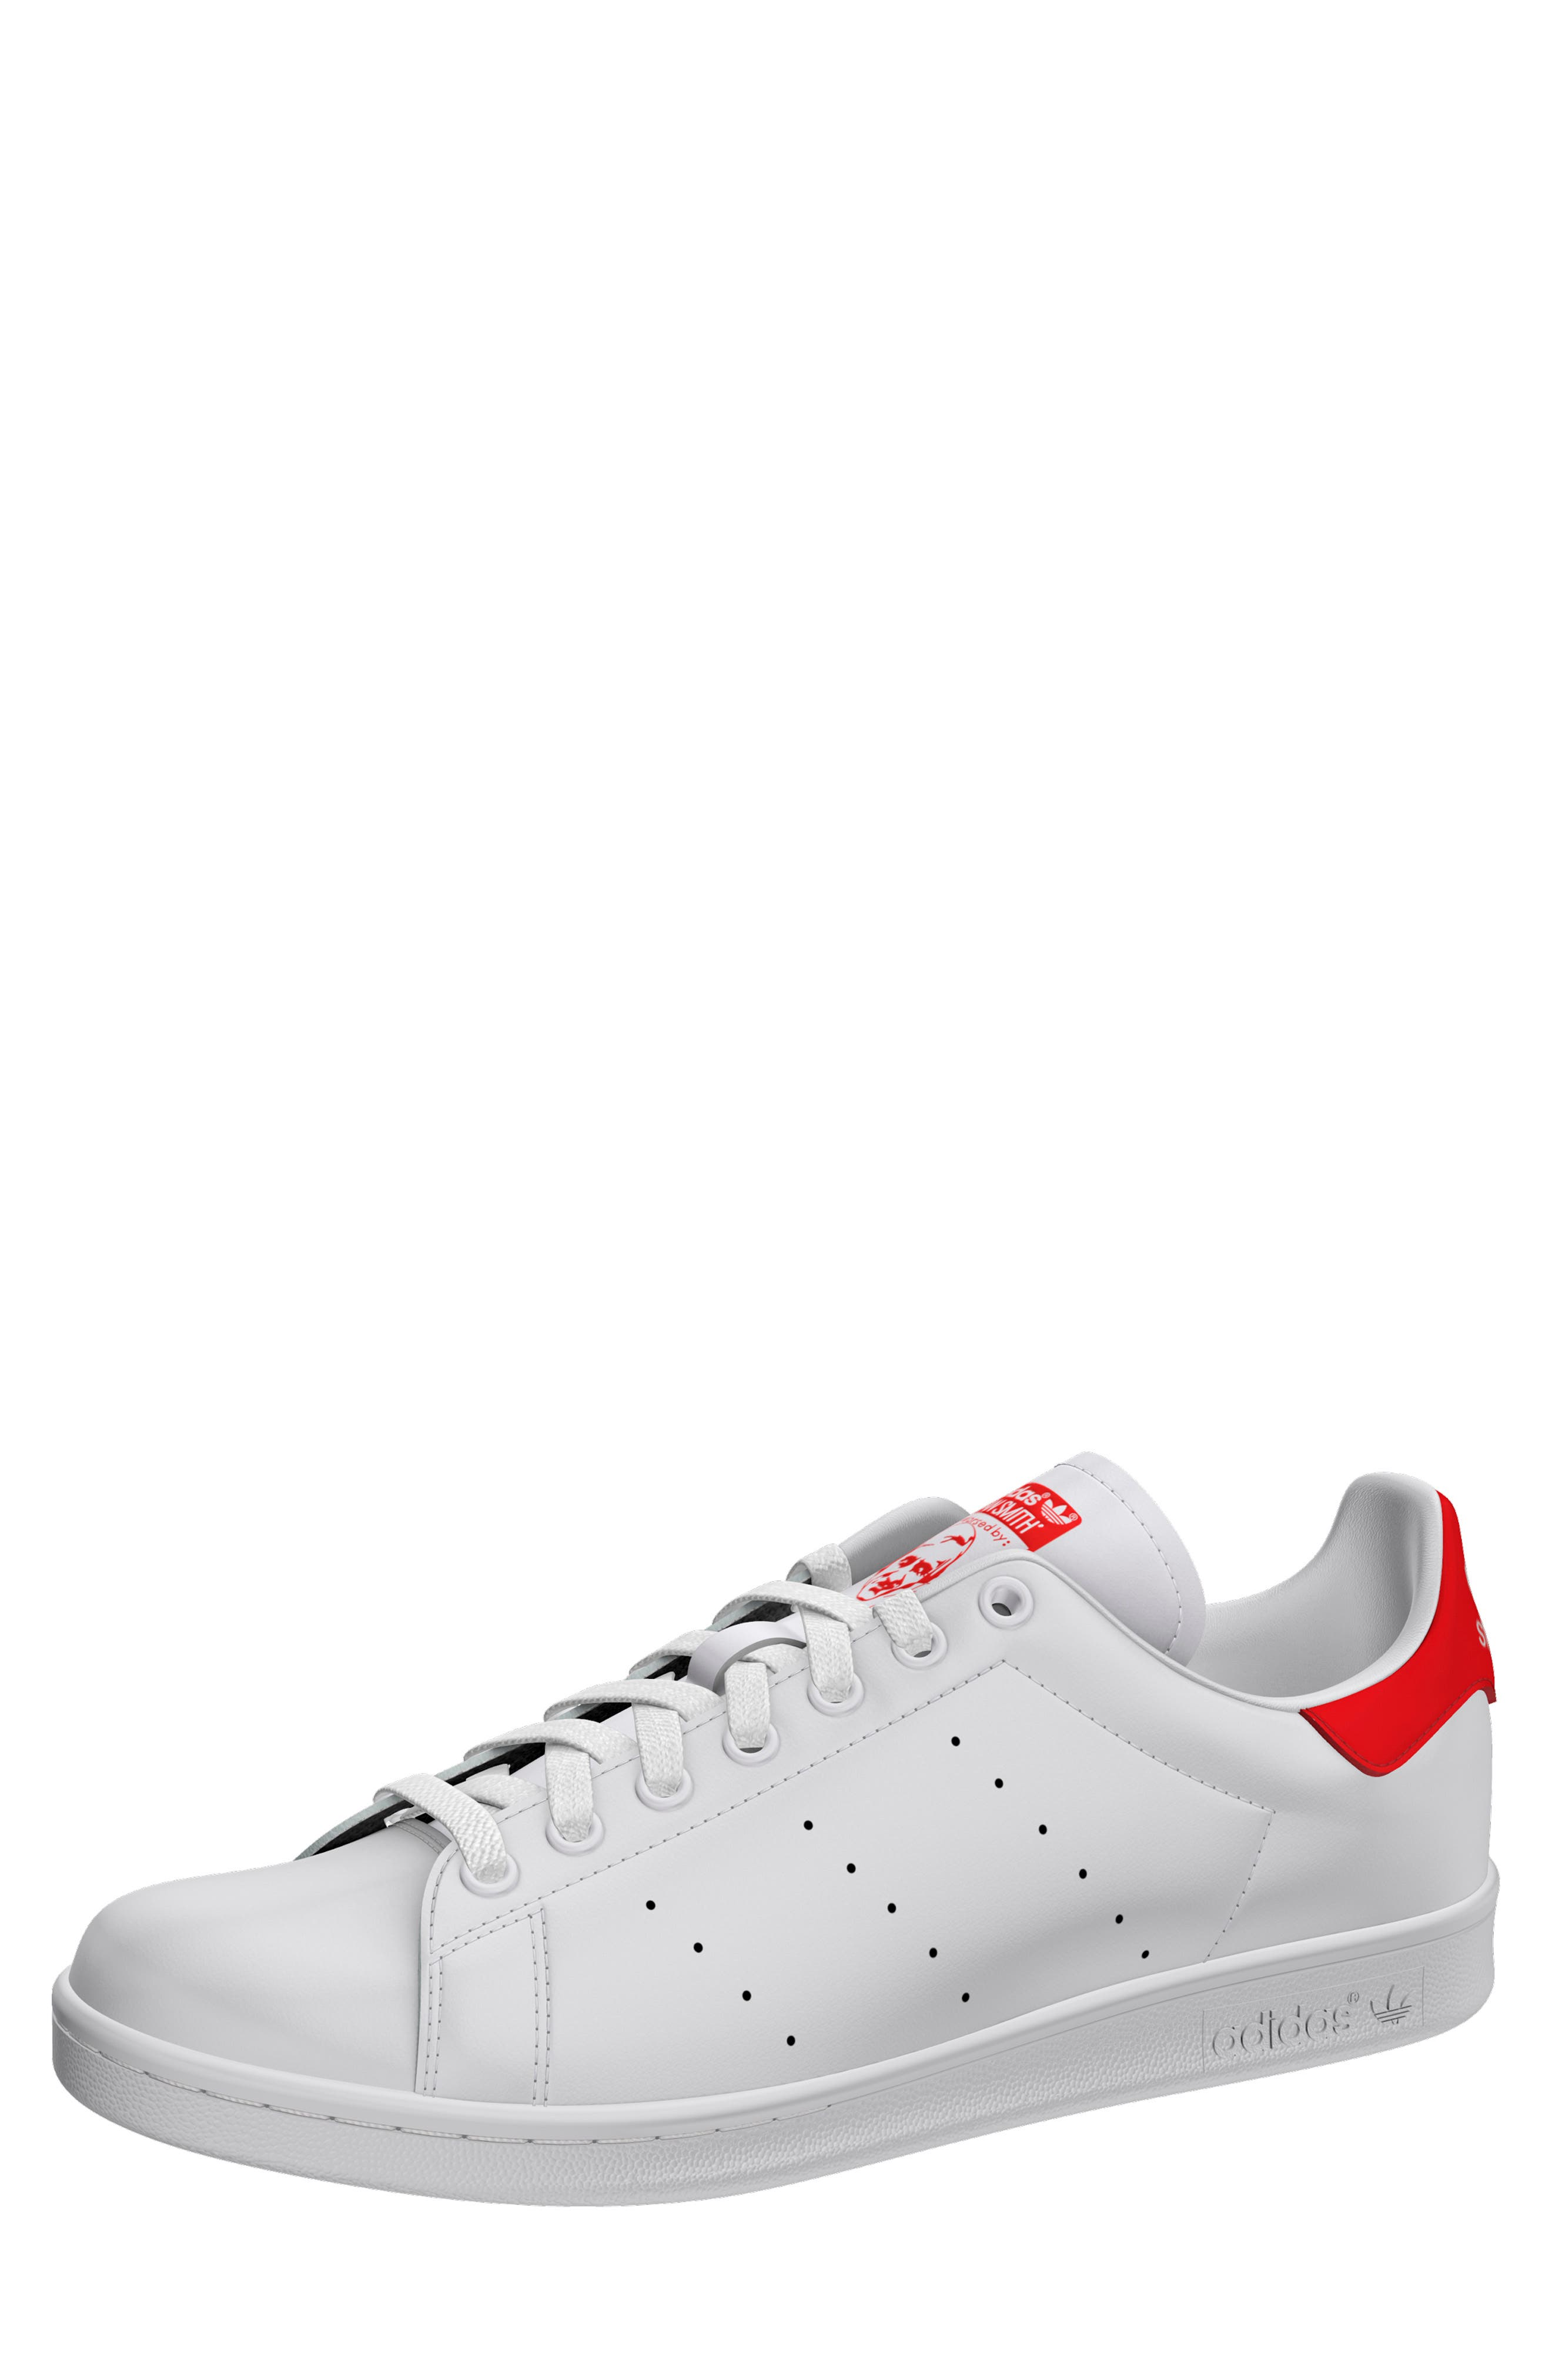 stan smith sneakers nordstrom